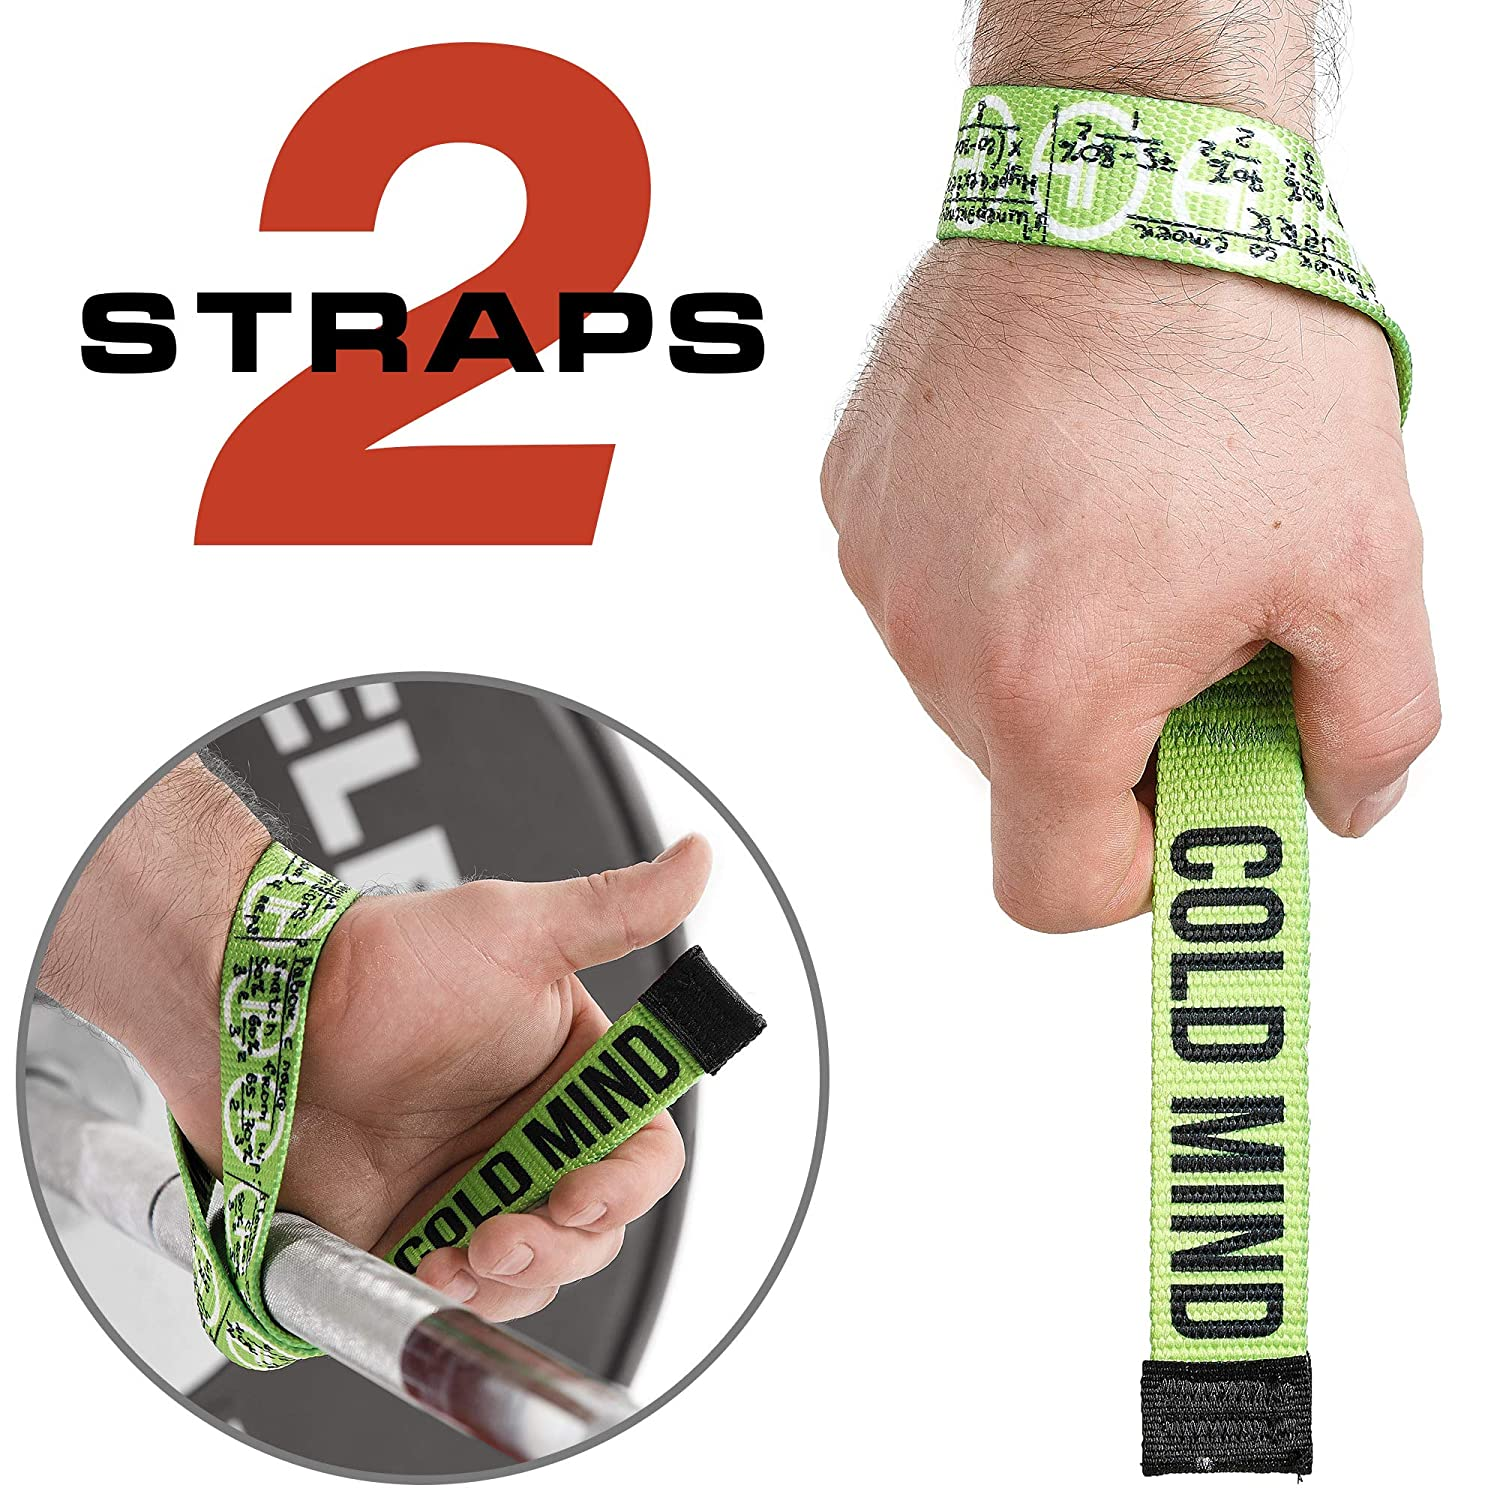 V-Shaped Wrist Wraps for Men and Woman Functional Strength Training Functional Strength Training V-Shaped Wrist Wraps for Men and Woman Powerlifting Camouflage Pair of WARM BODY COLD MIND Lifting Wrist Straps for Olympic Weightlifting